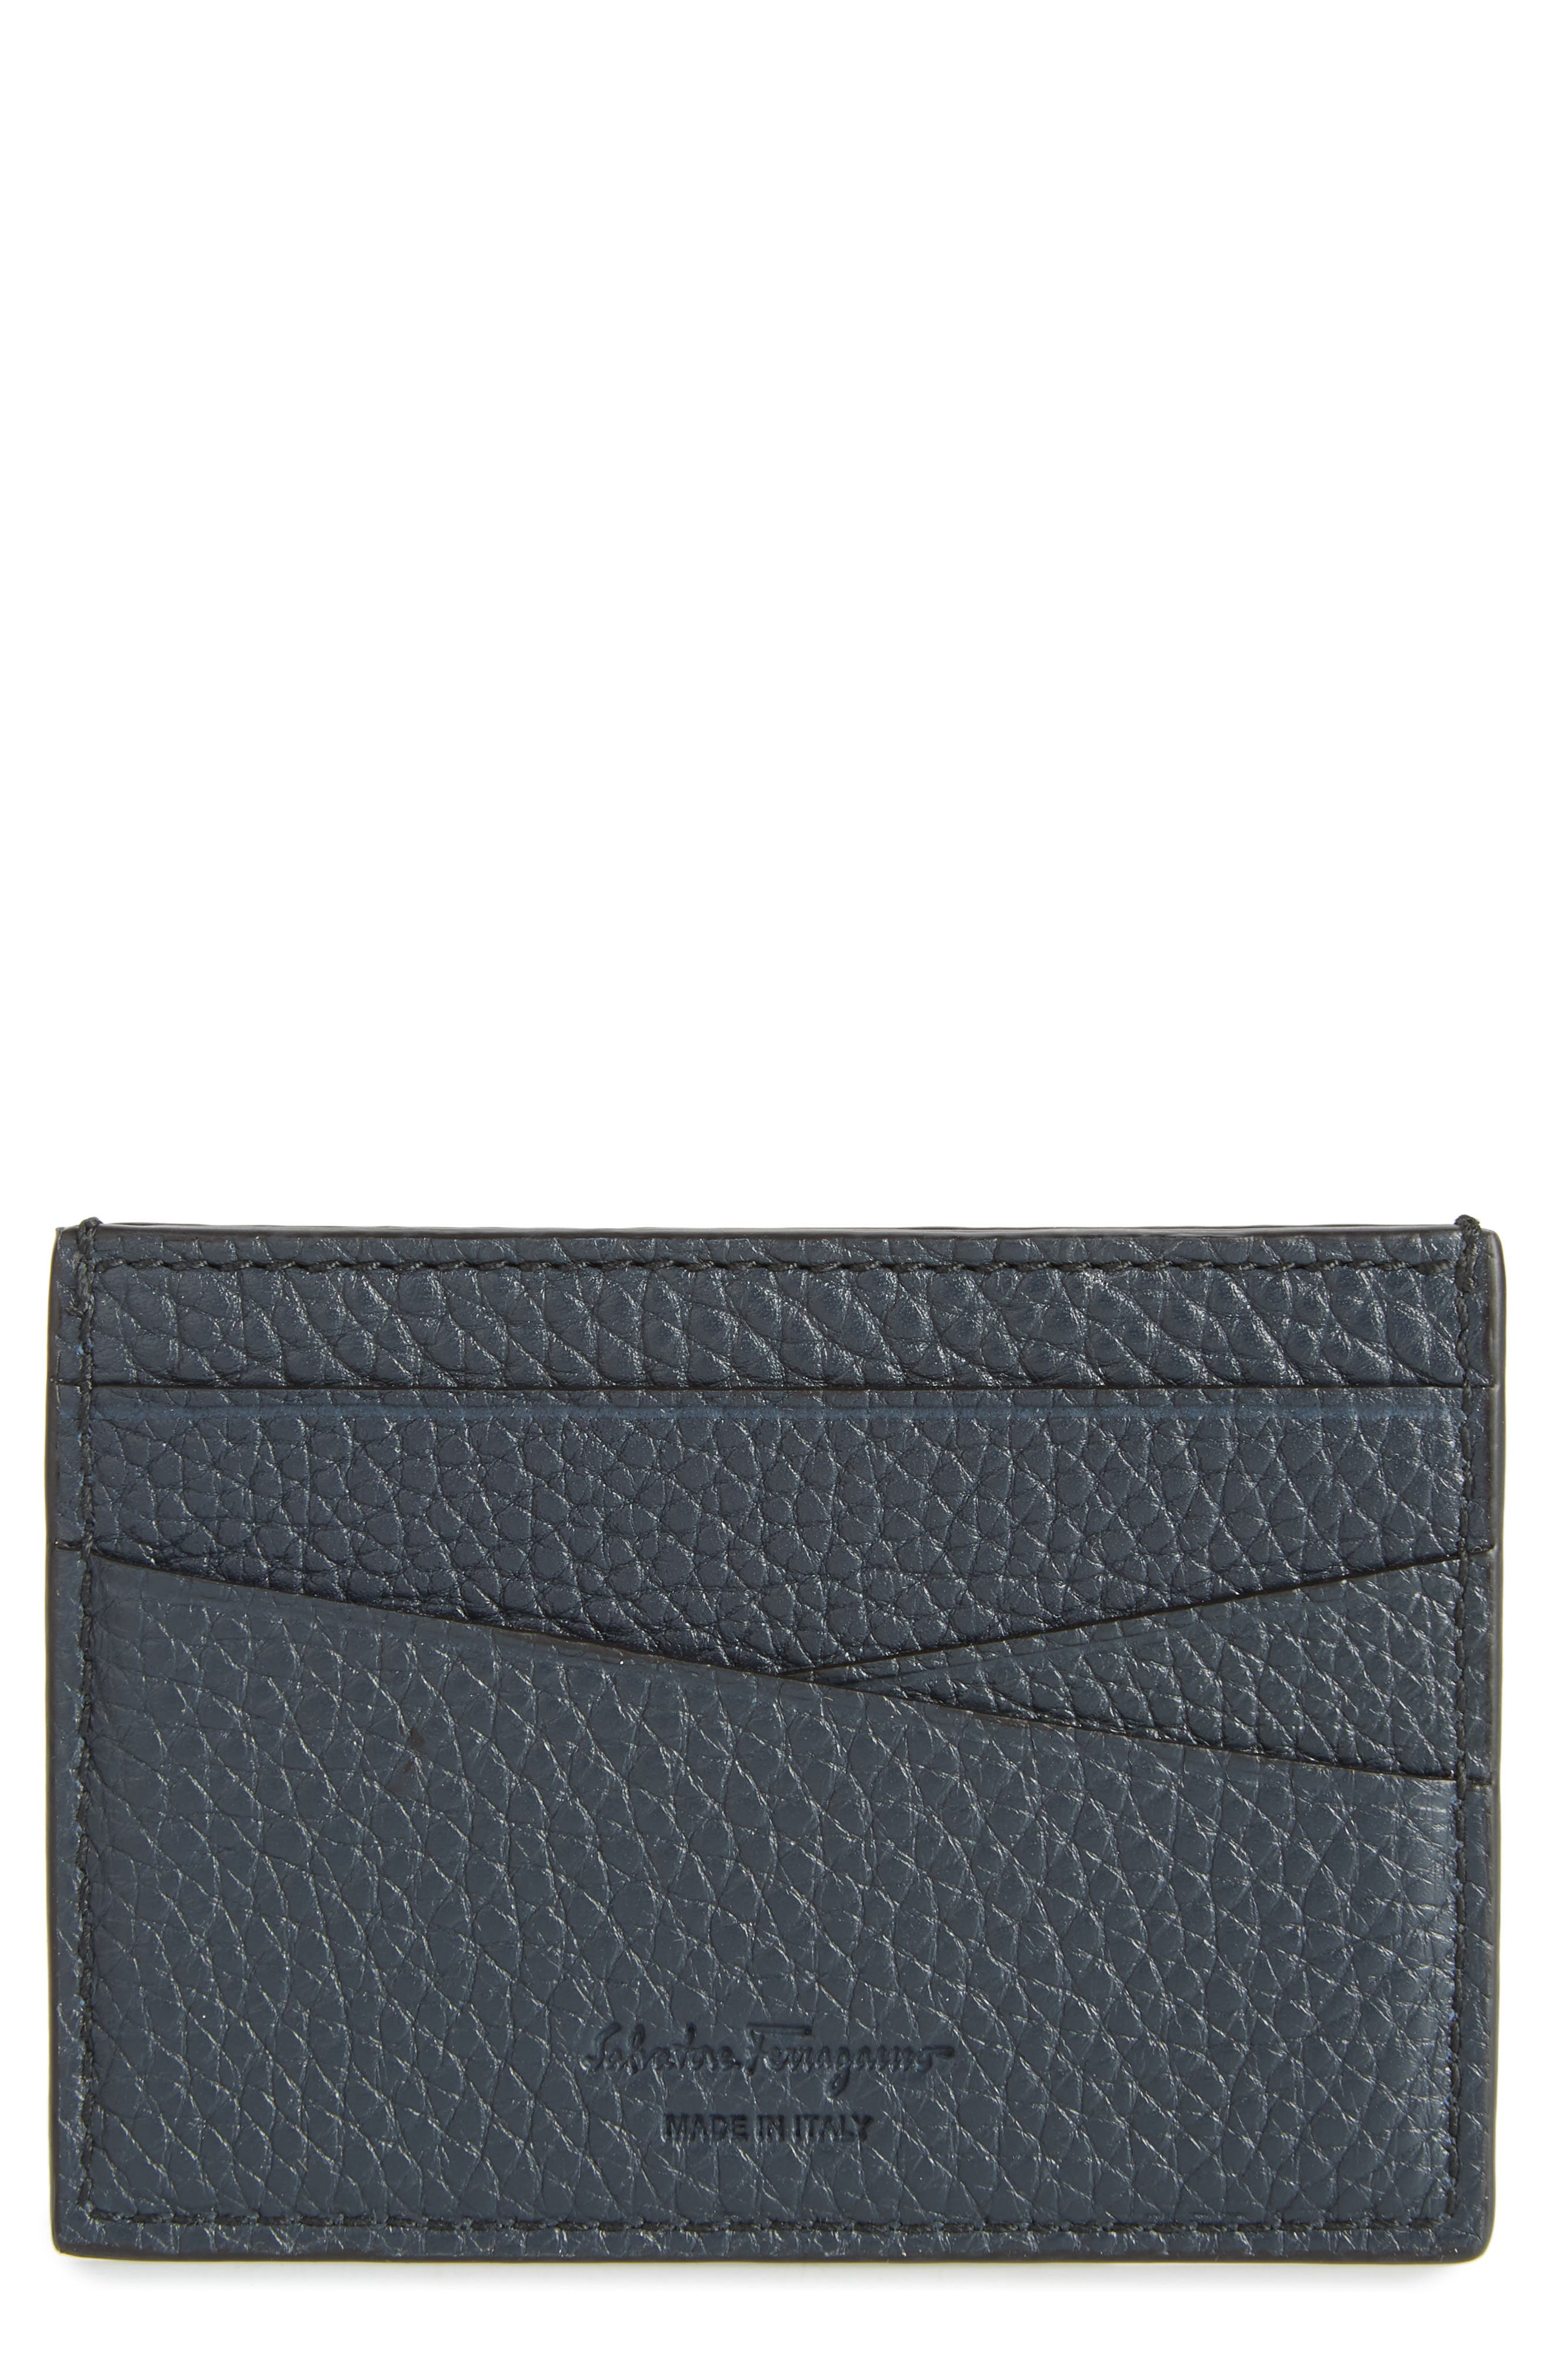 New Firenze Leather Card Case,                             Main thumbnail 1, color,                             NERO